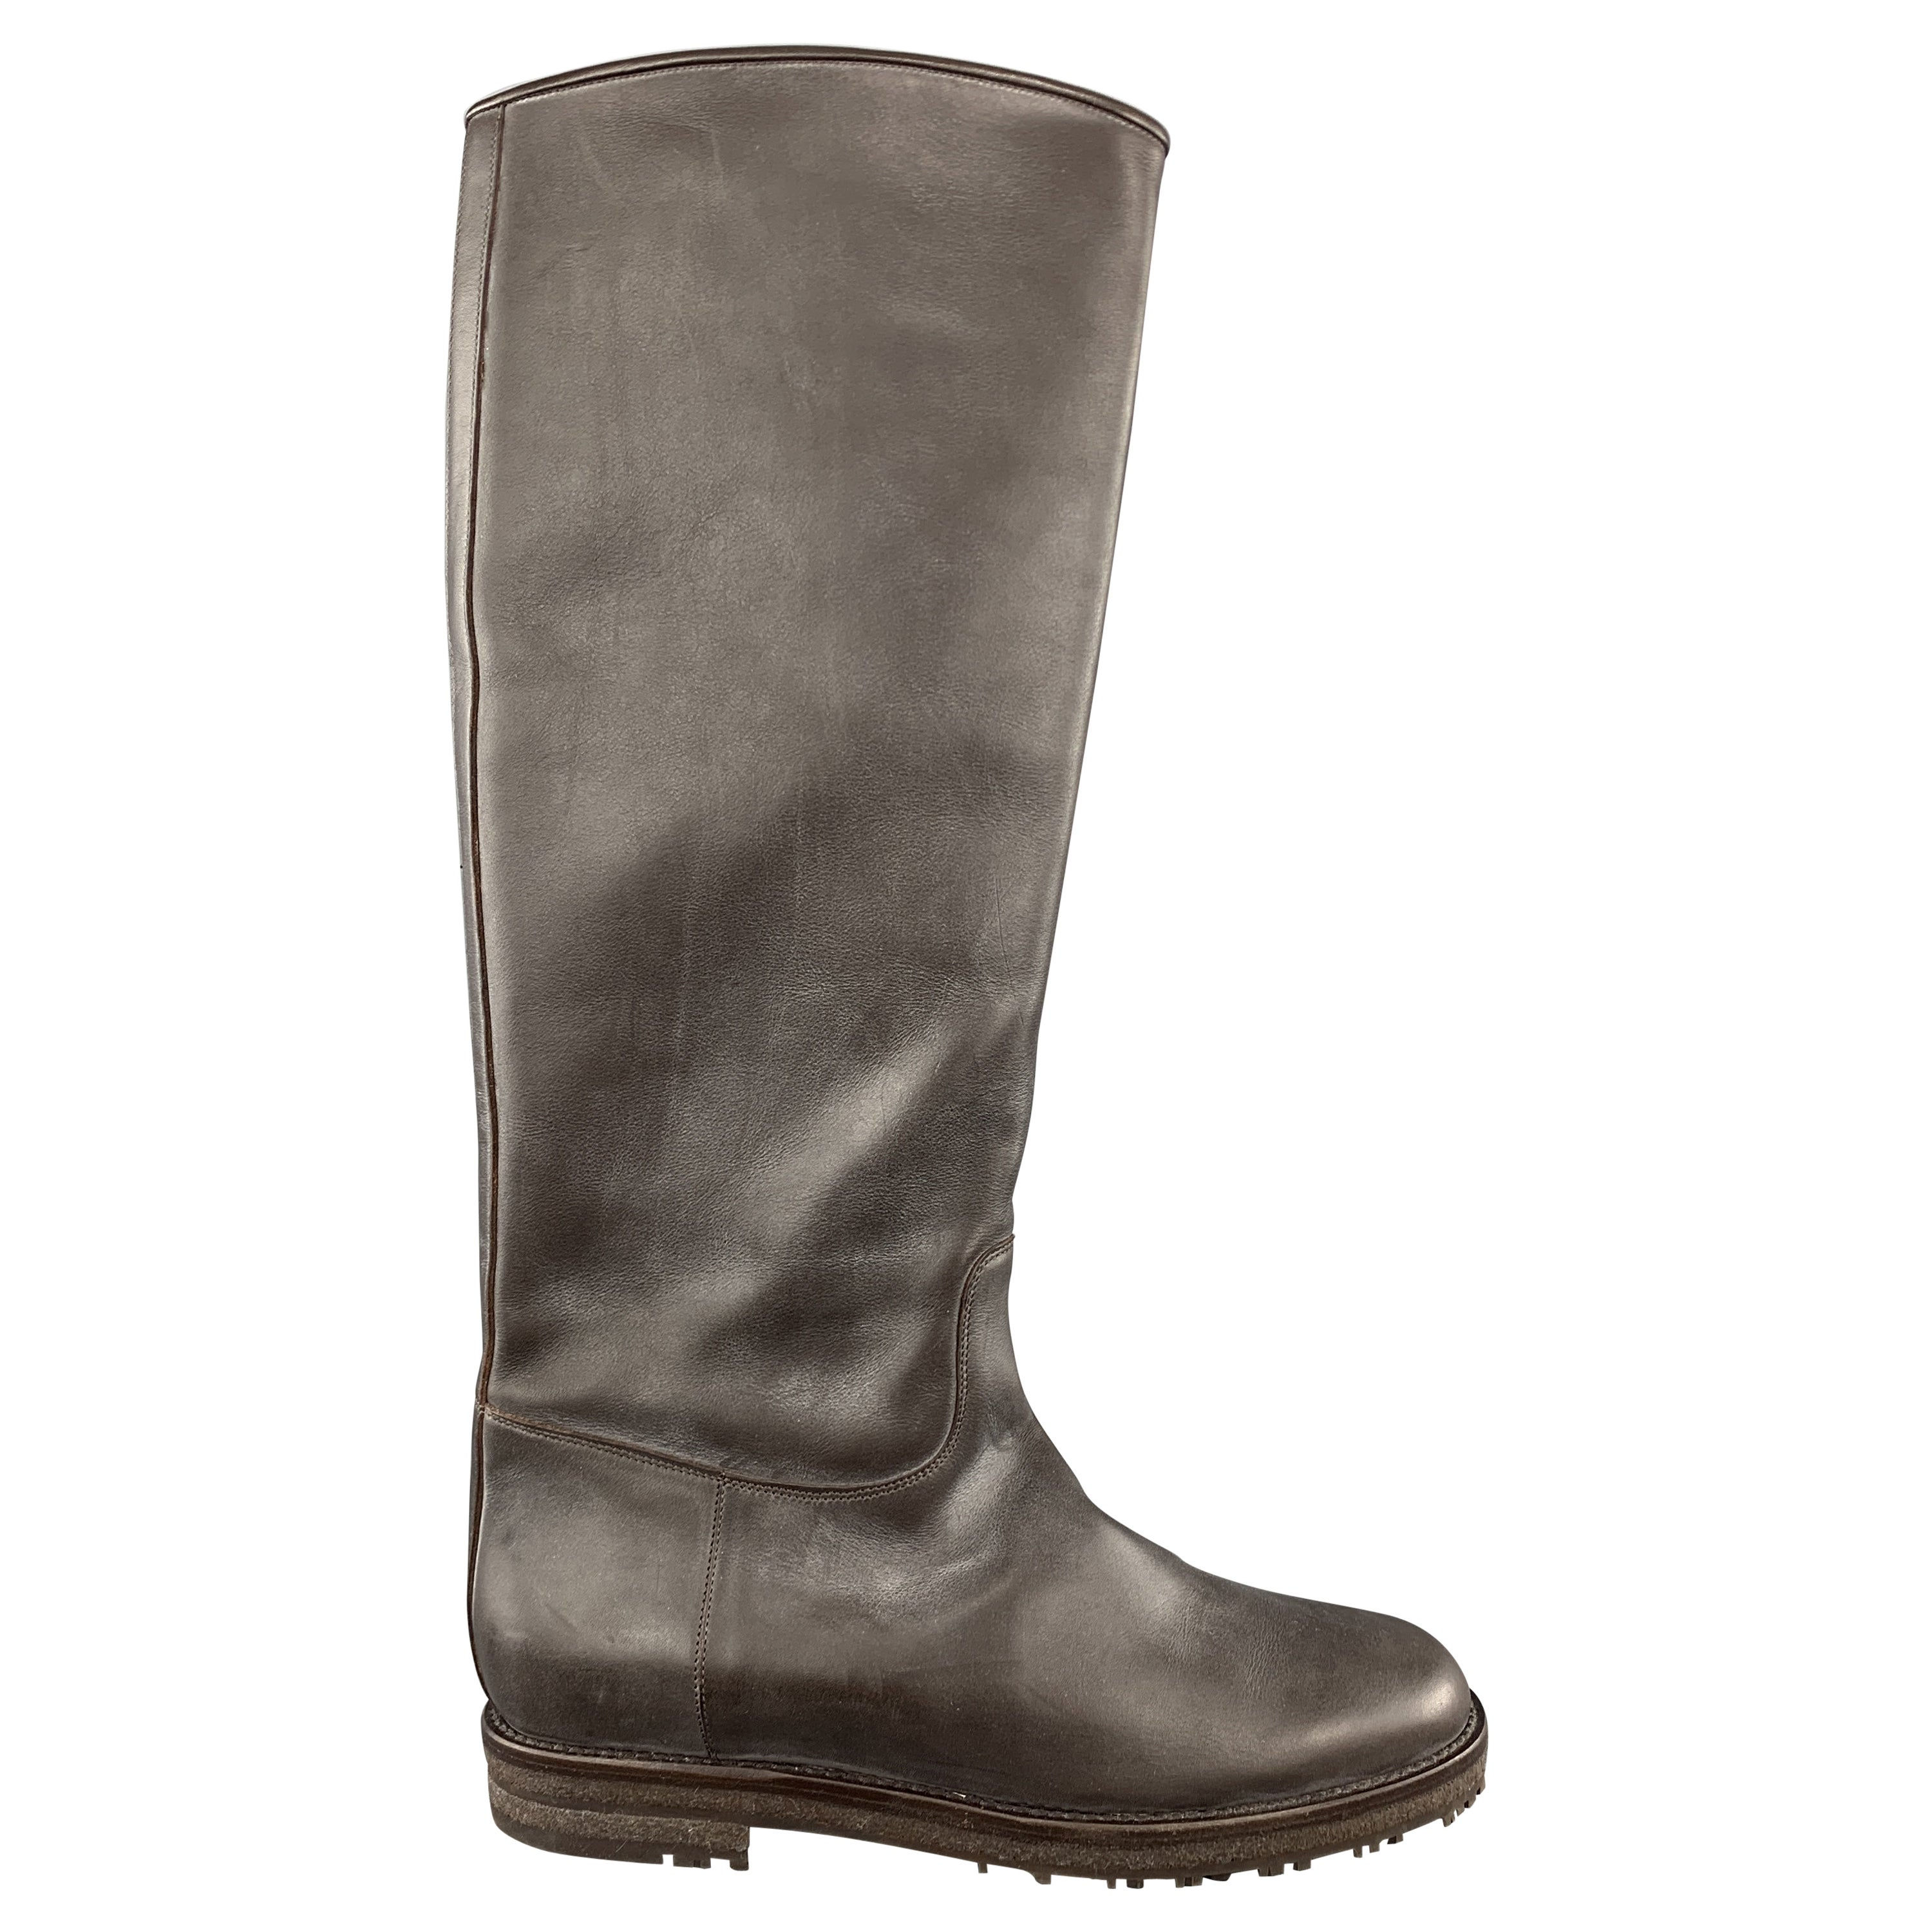 e798686317e LORO PIANA Size 5 Brown Solid Leather Knee High Flat Boots For Sale at  1stdibs